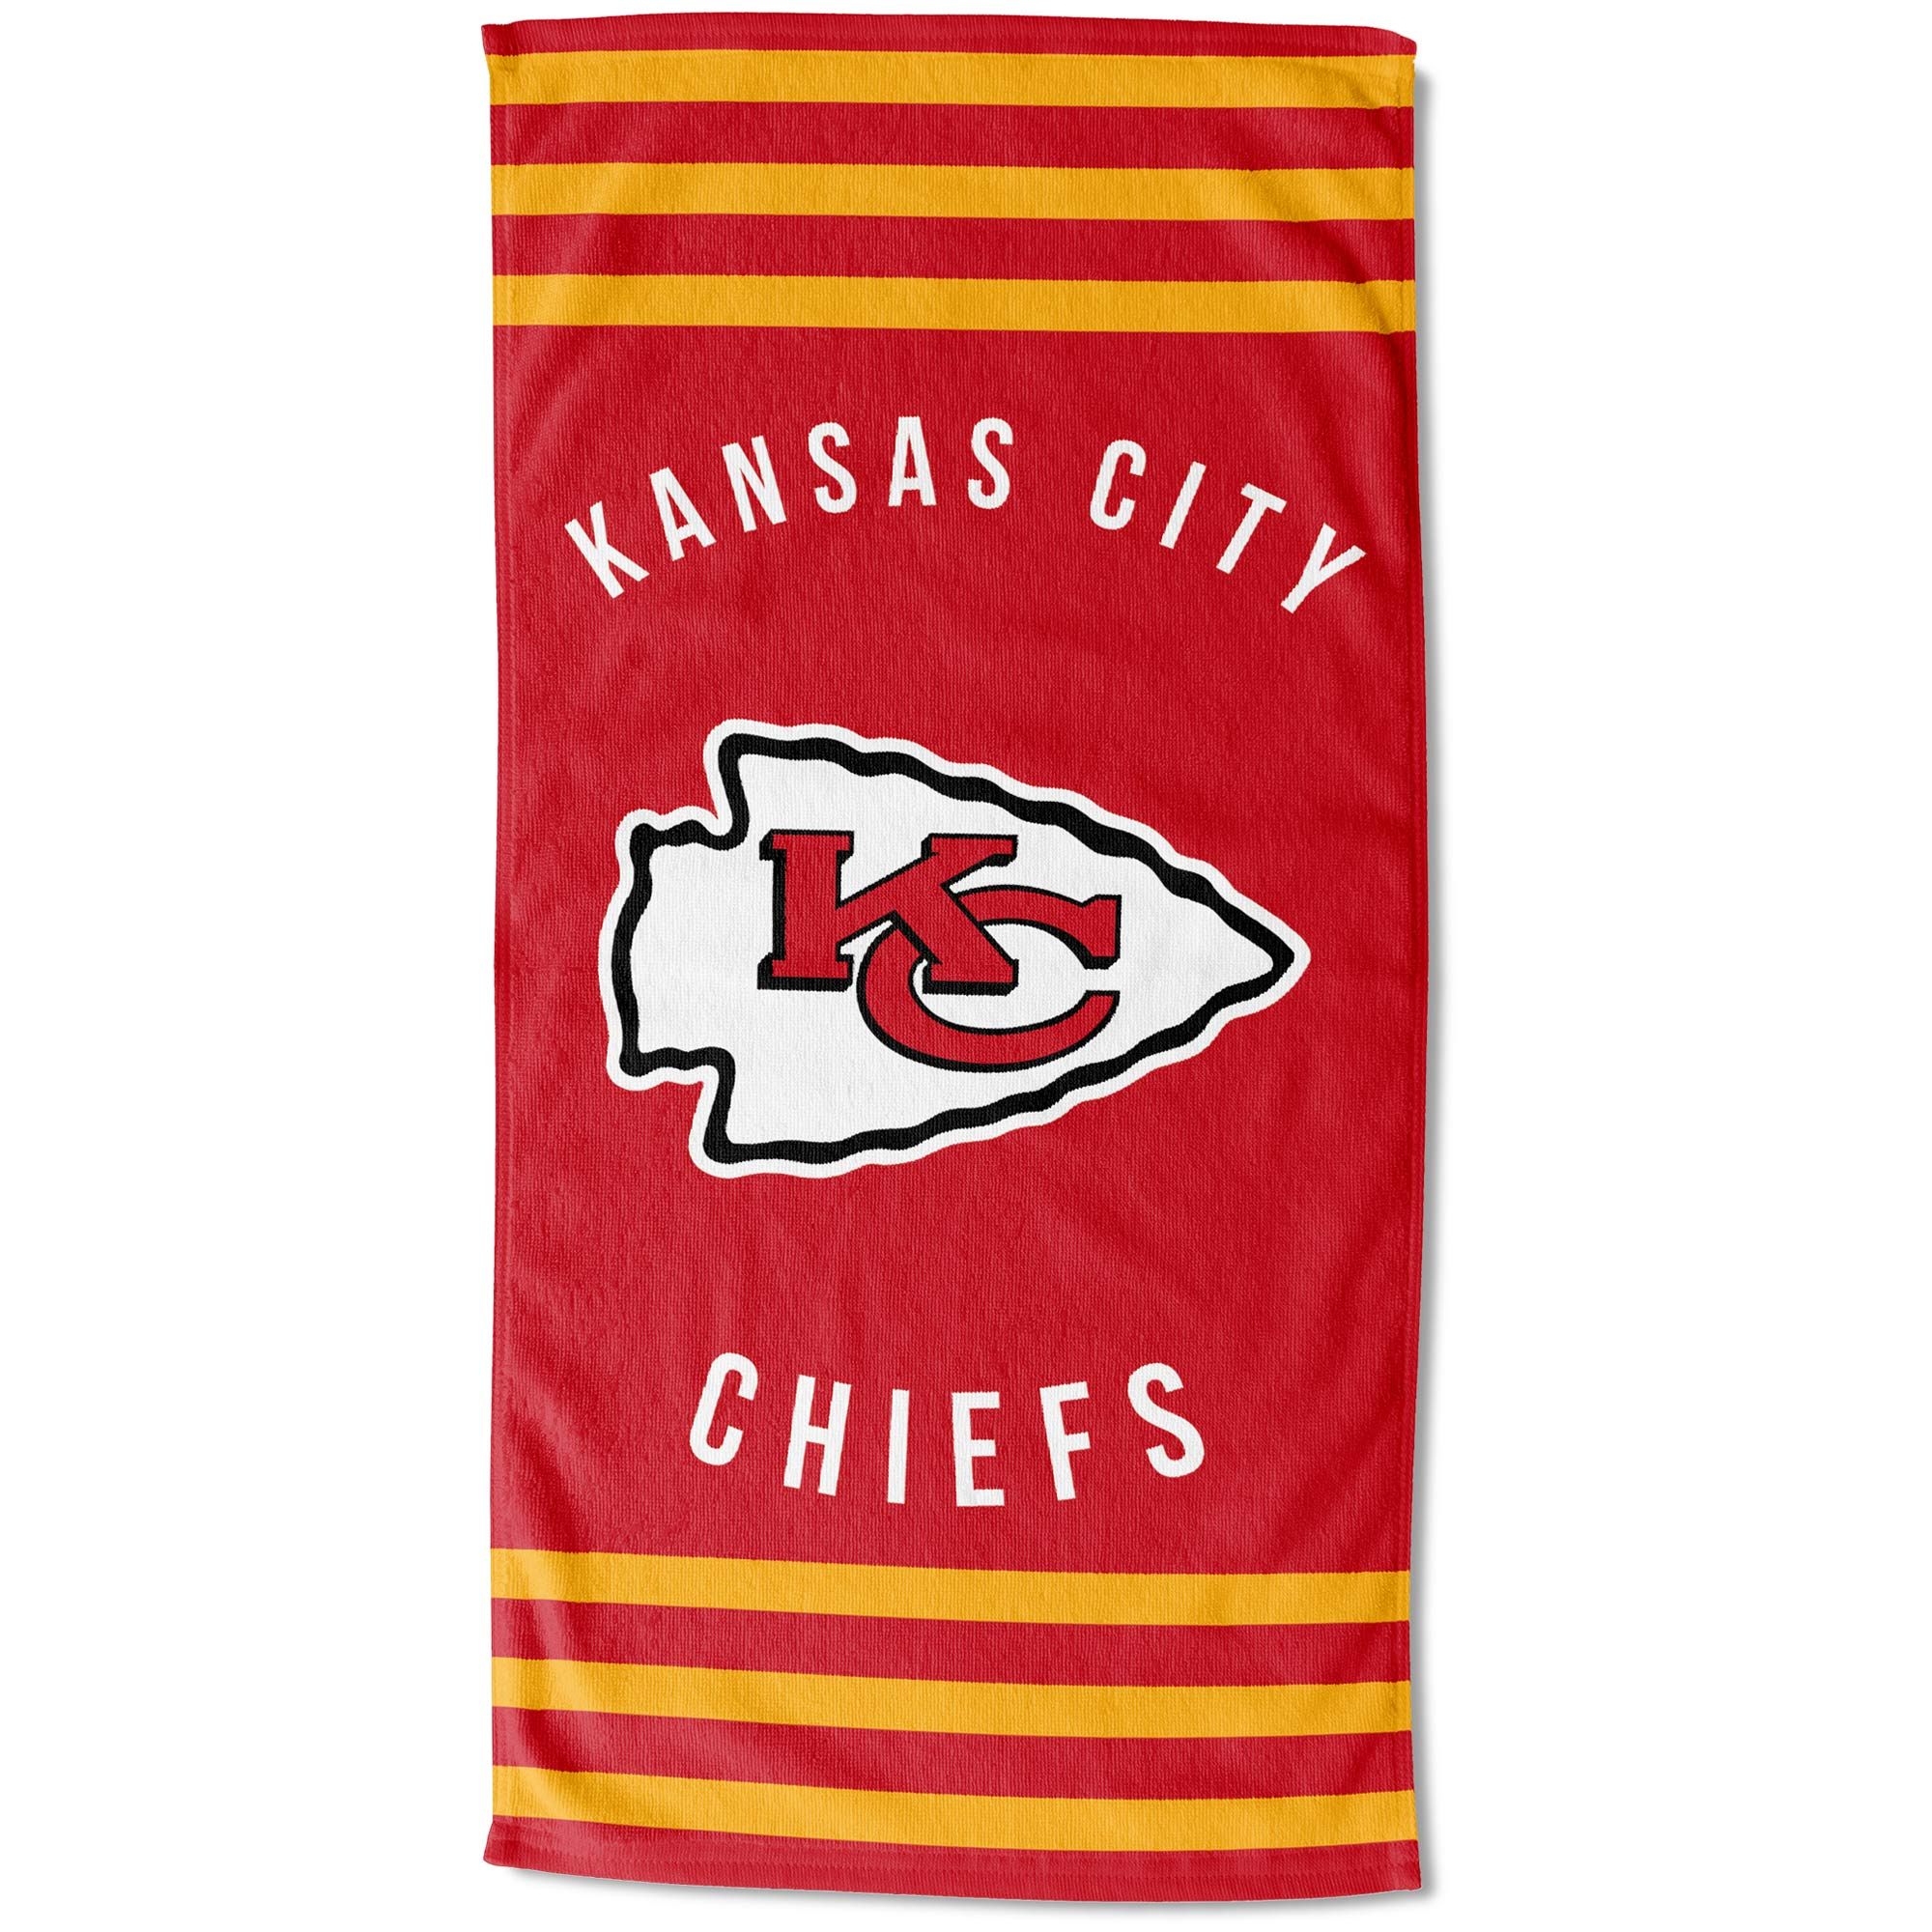 "Kansas City Chiefs The Northwest Company 30"" x 60"" Striped Beach Towel - No Size"